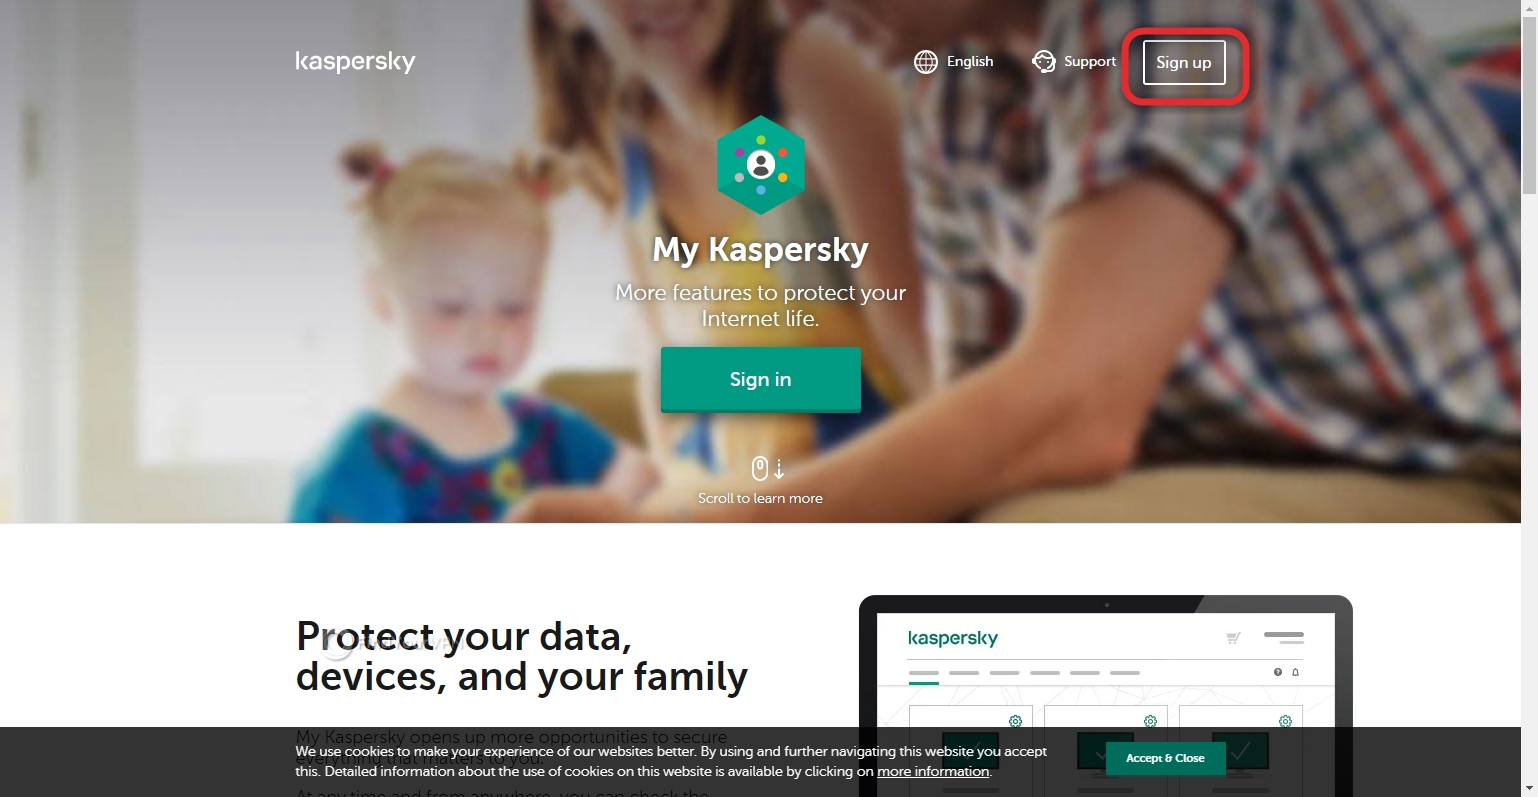 The sign up button of Kaspersky Secure Connection